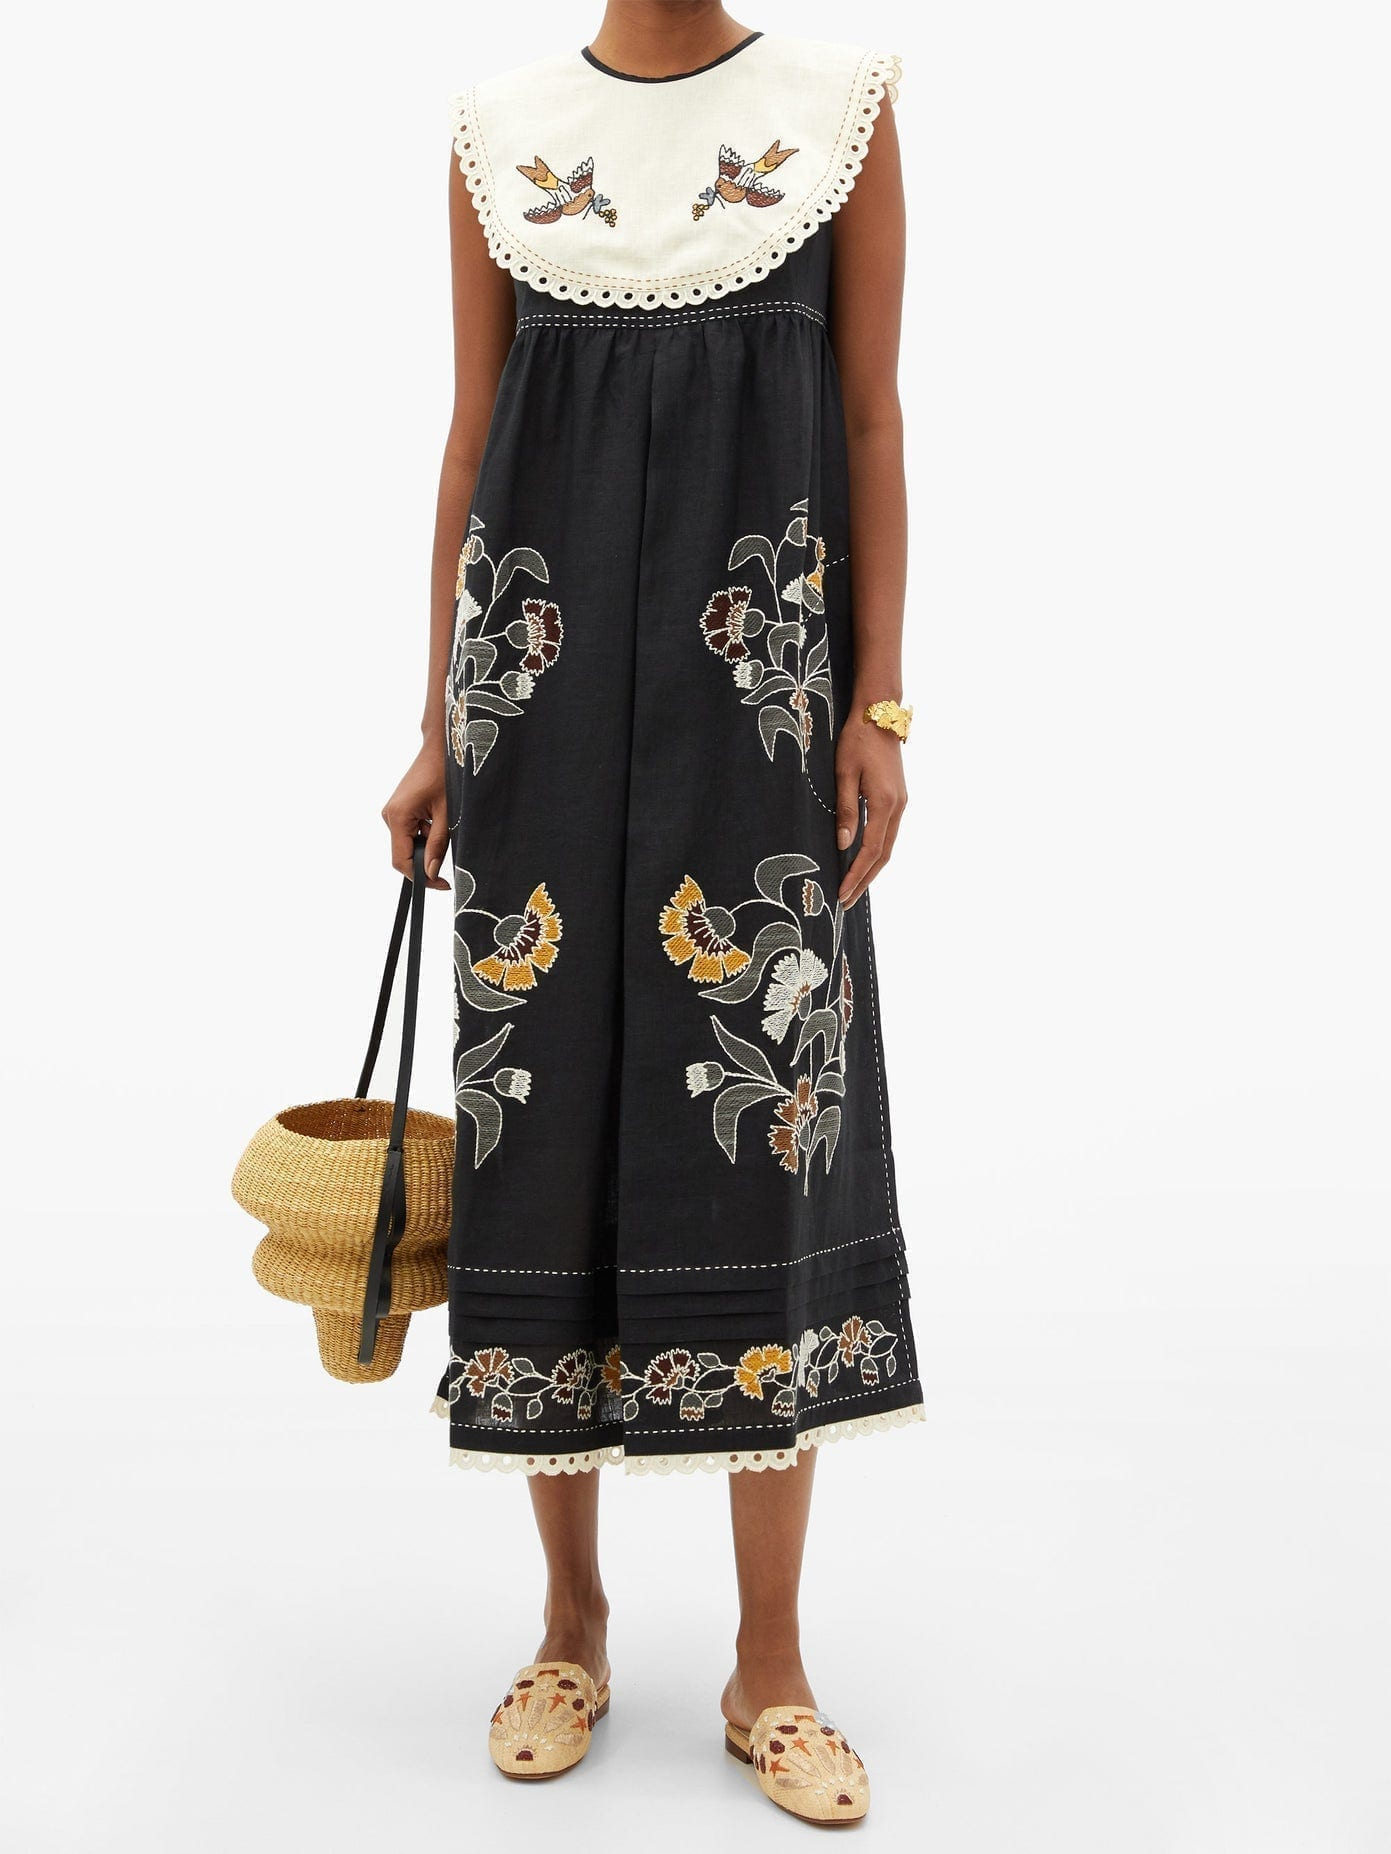 VITA KIN Heavenly Swallows Embroidered Linen Midi Dress